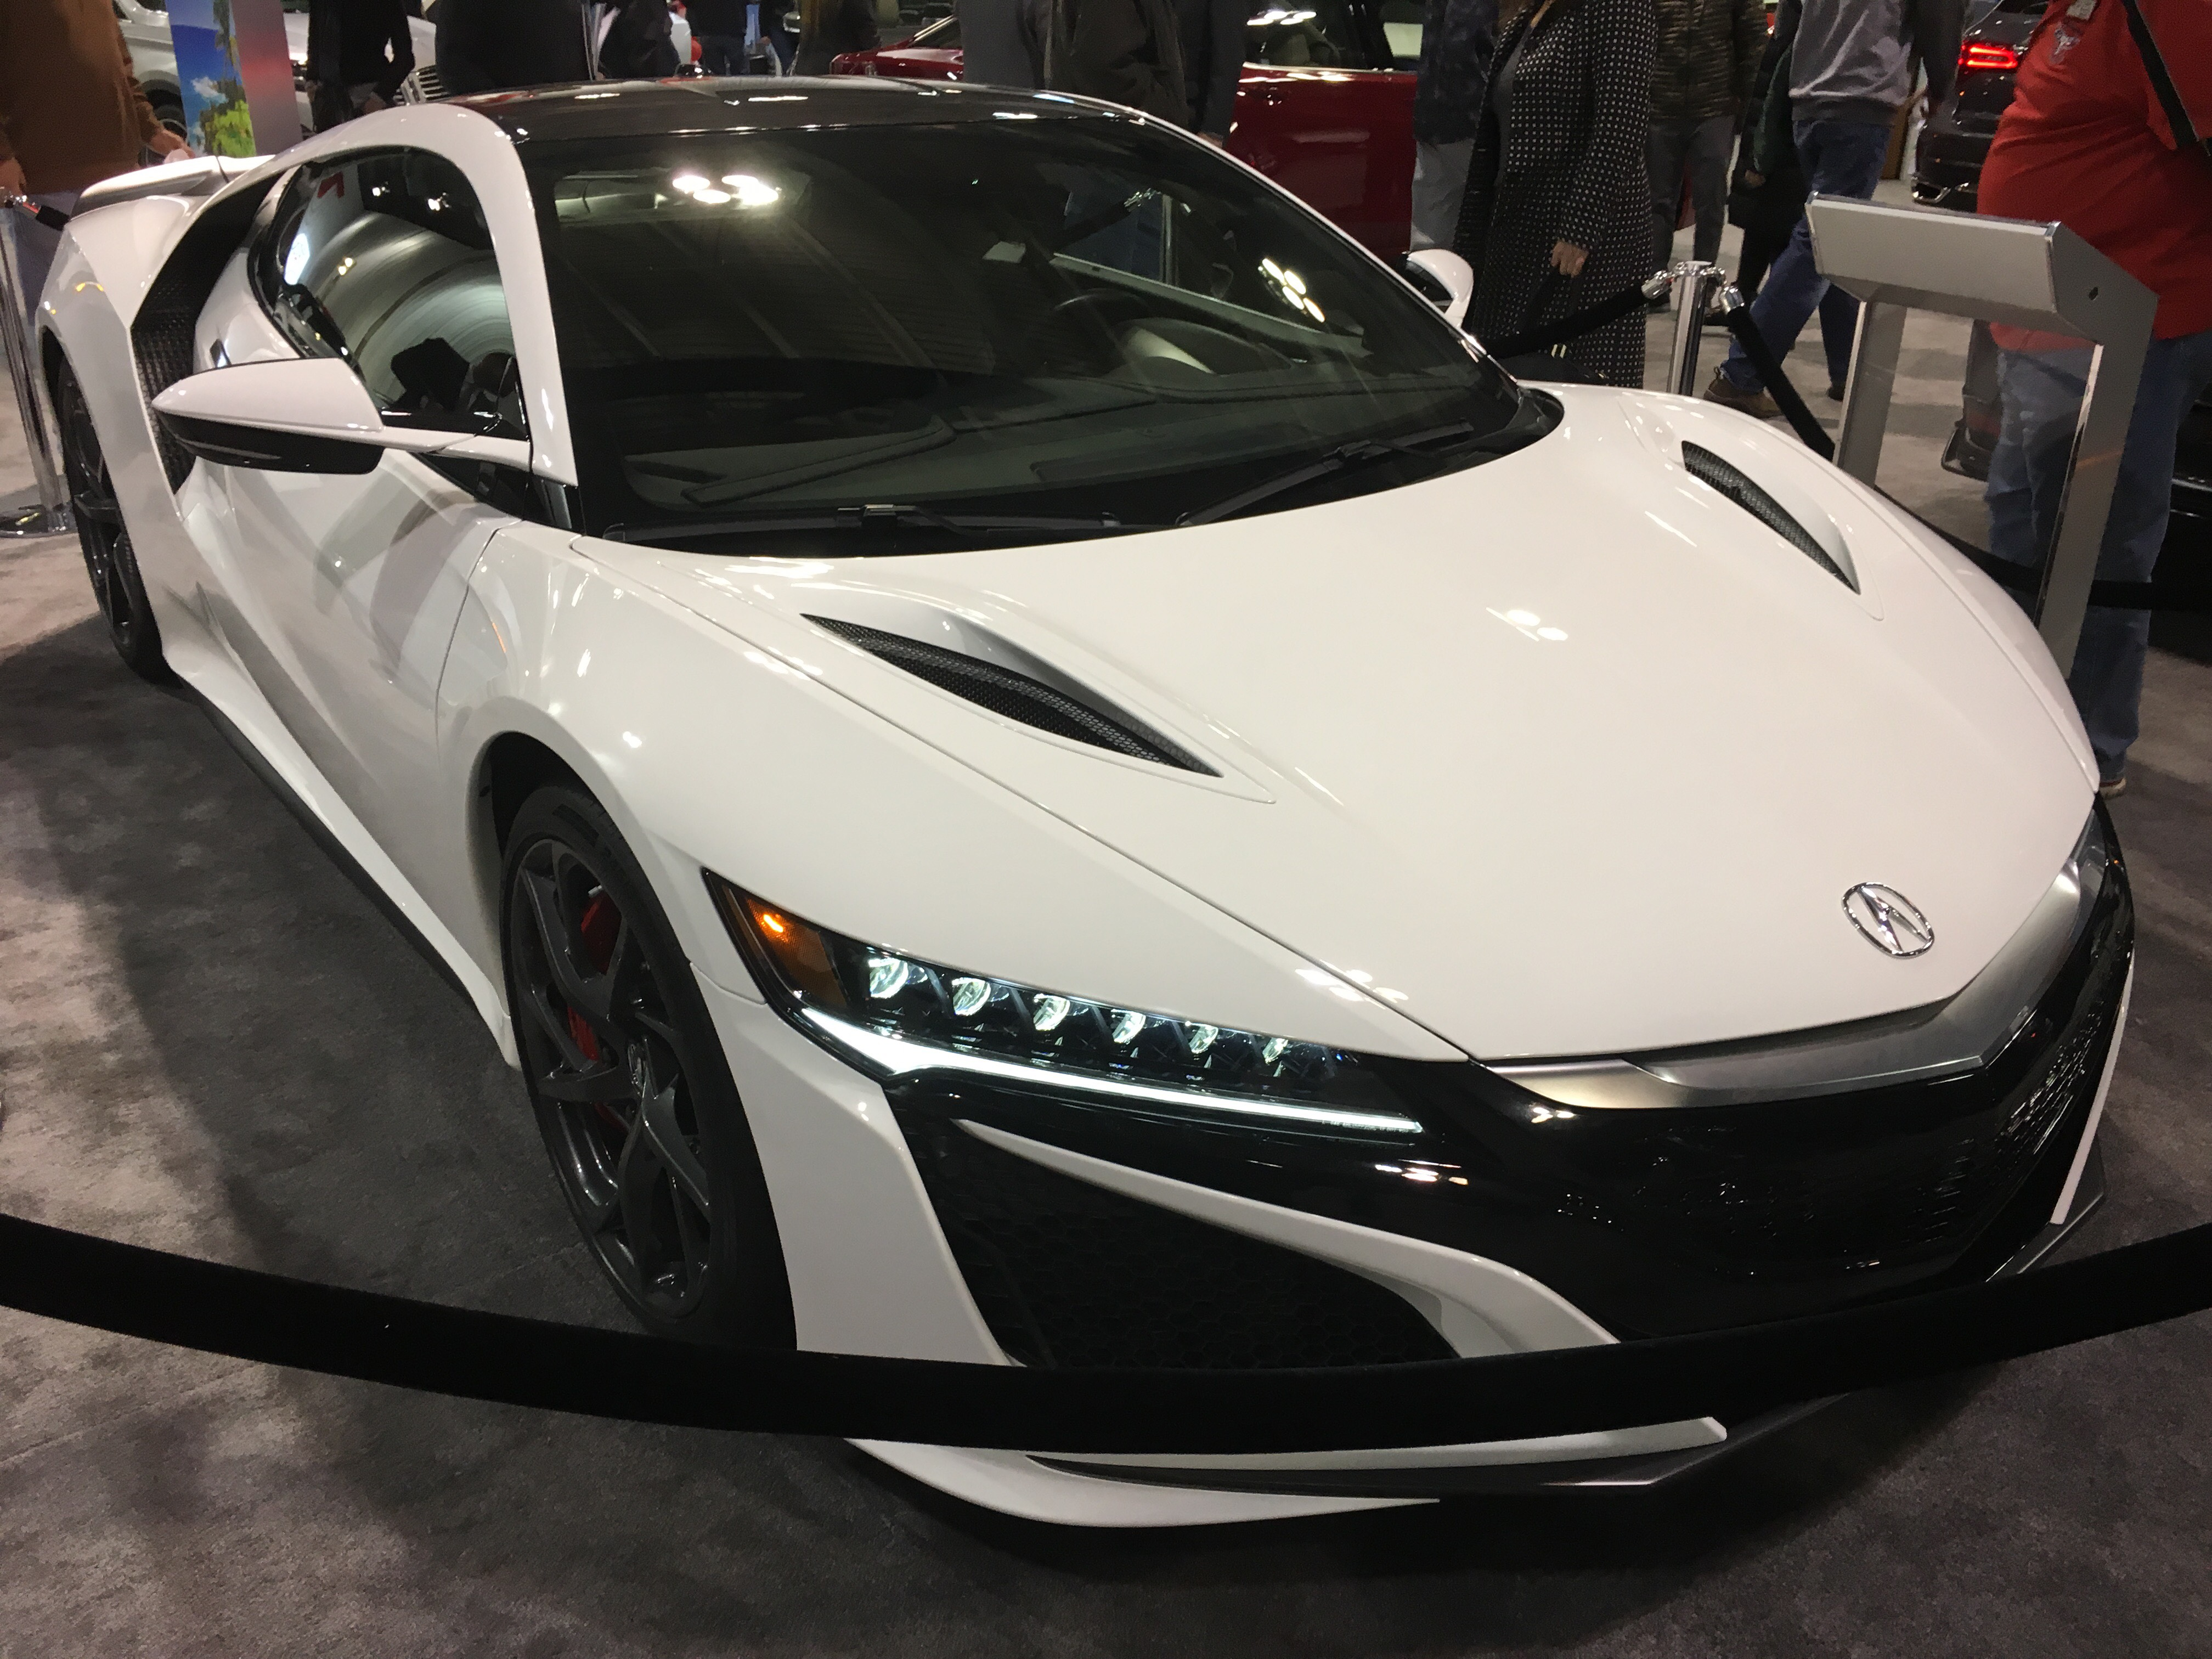 The Coolest Acura Ever Made